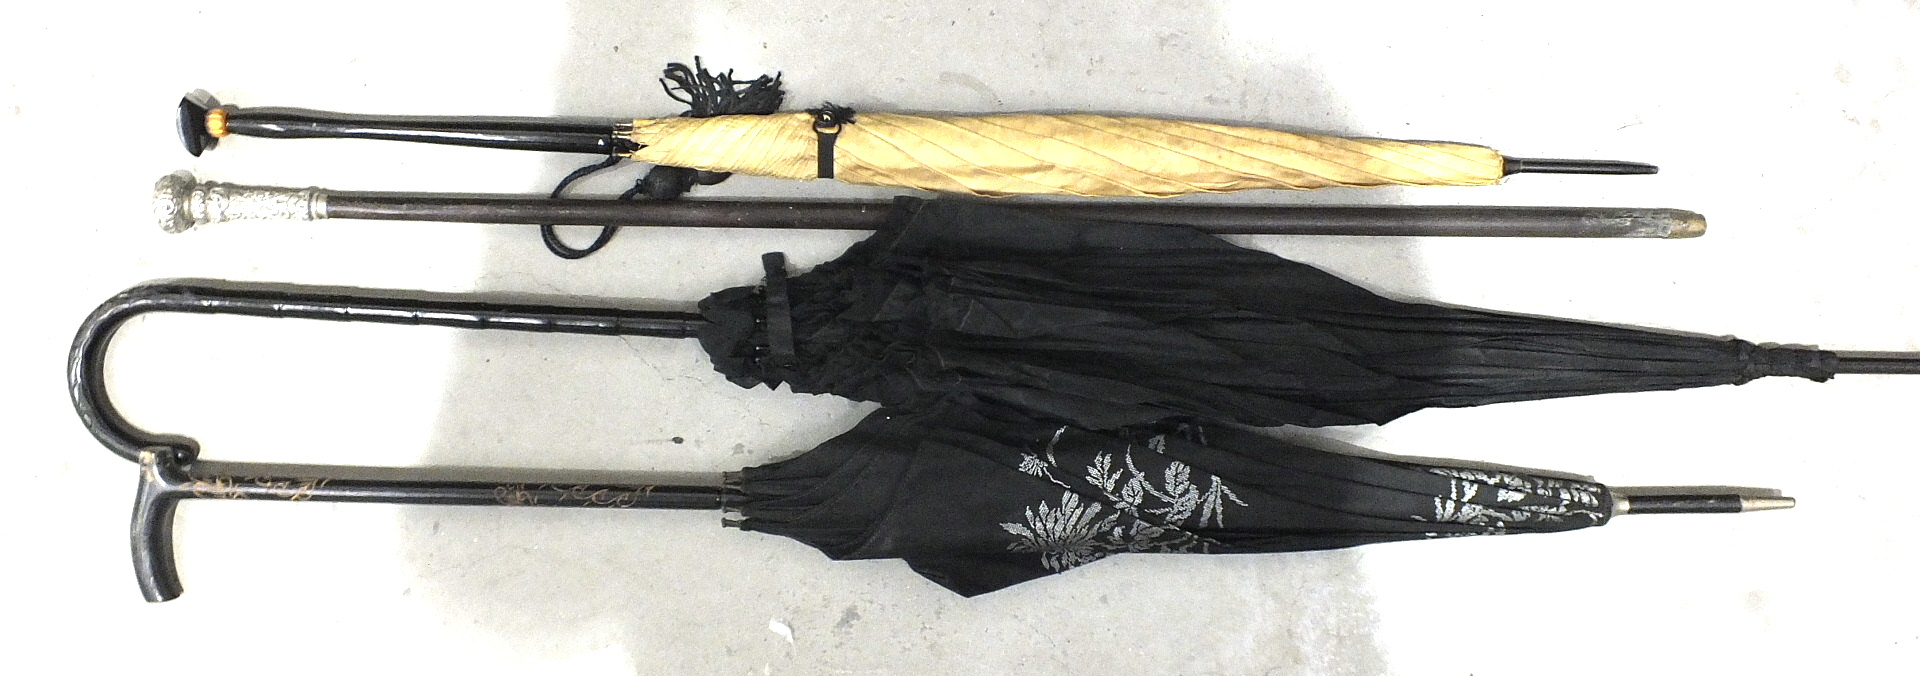 Lot 102 - A silver-mounted walking cane and three wooden-handled parasols, (4).